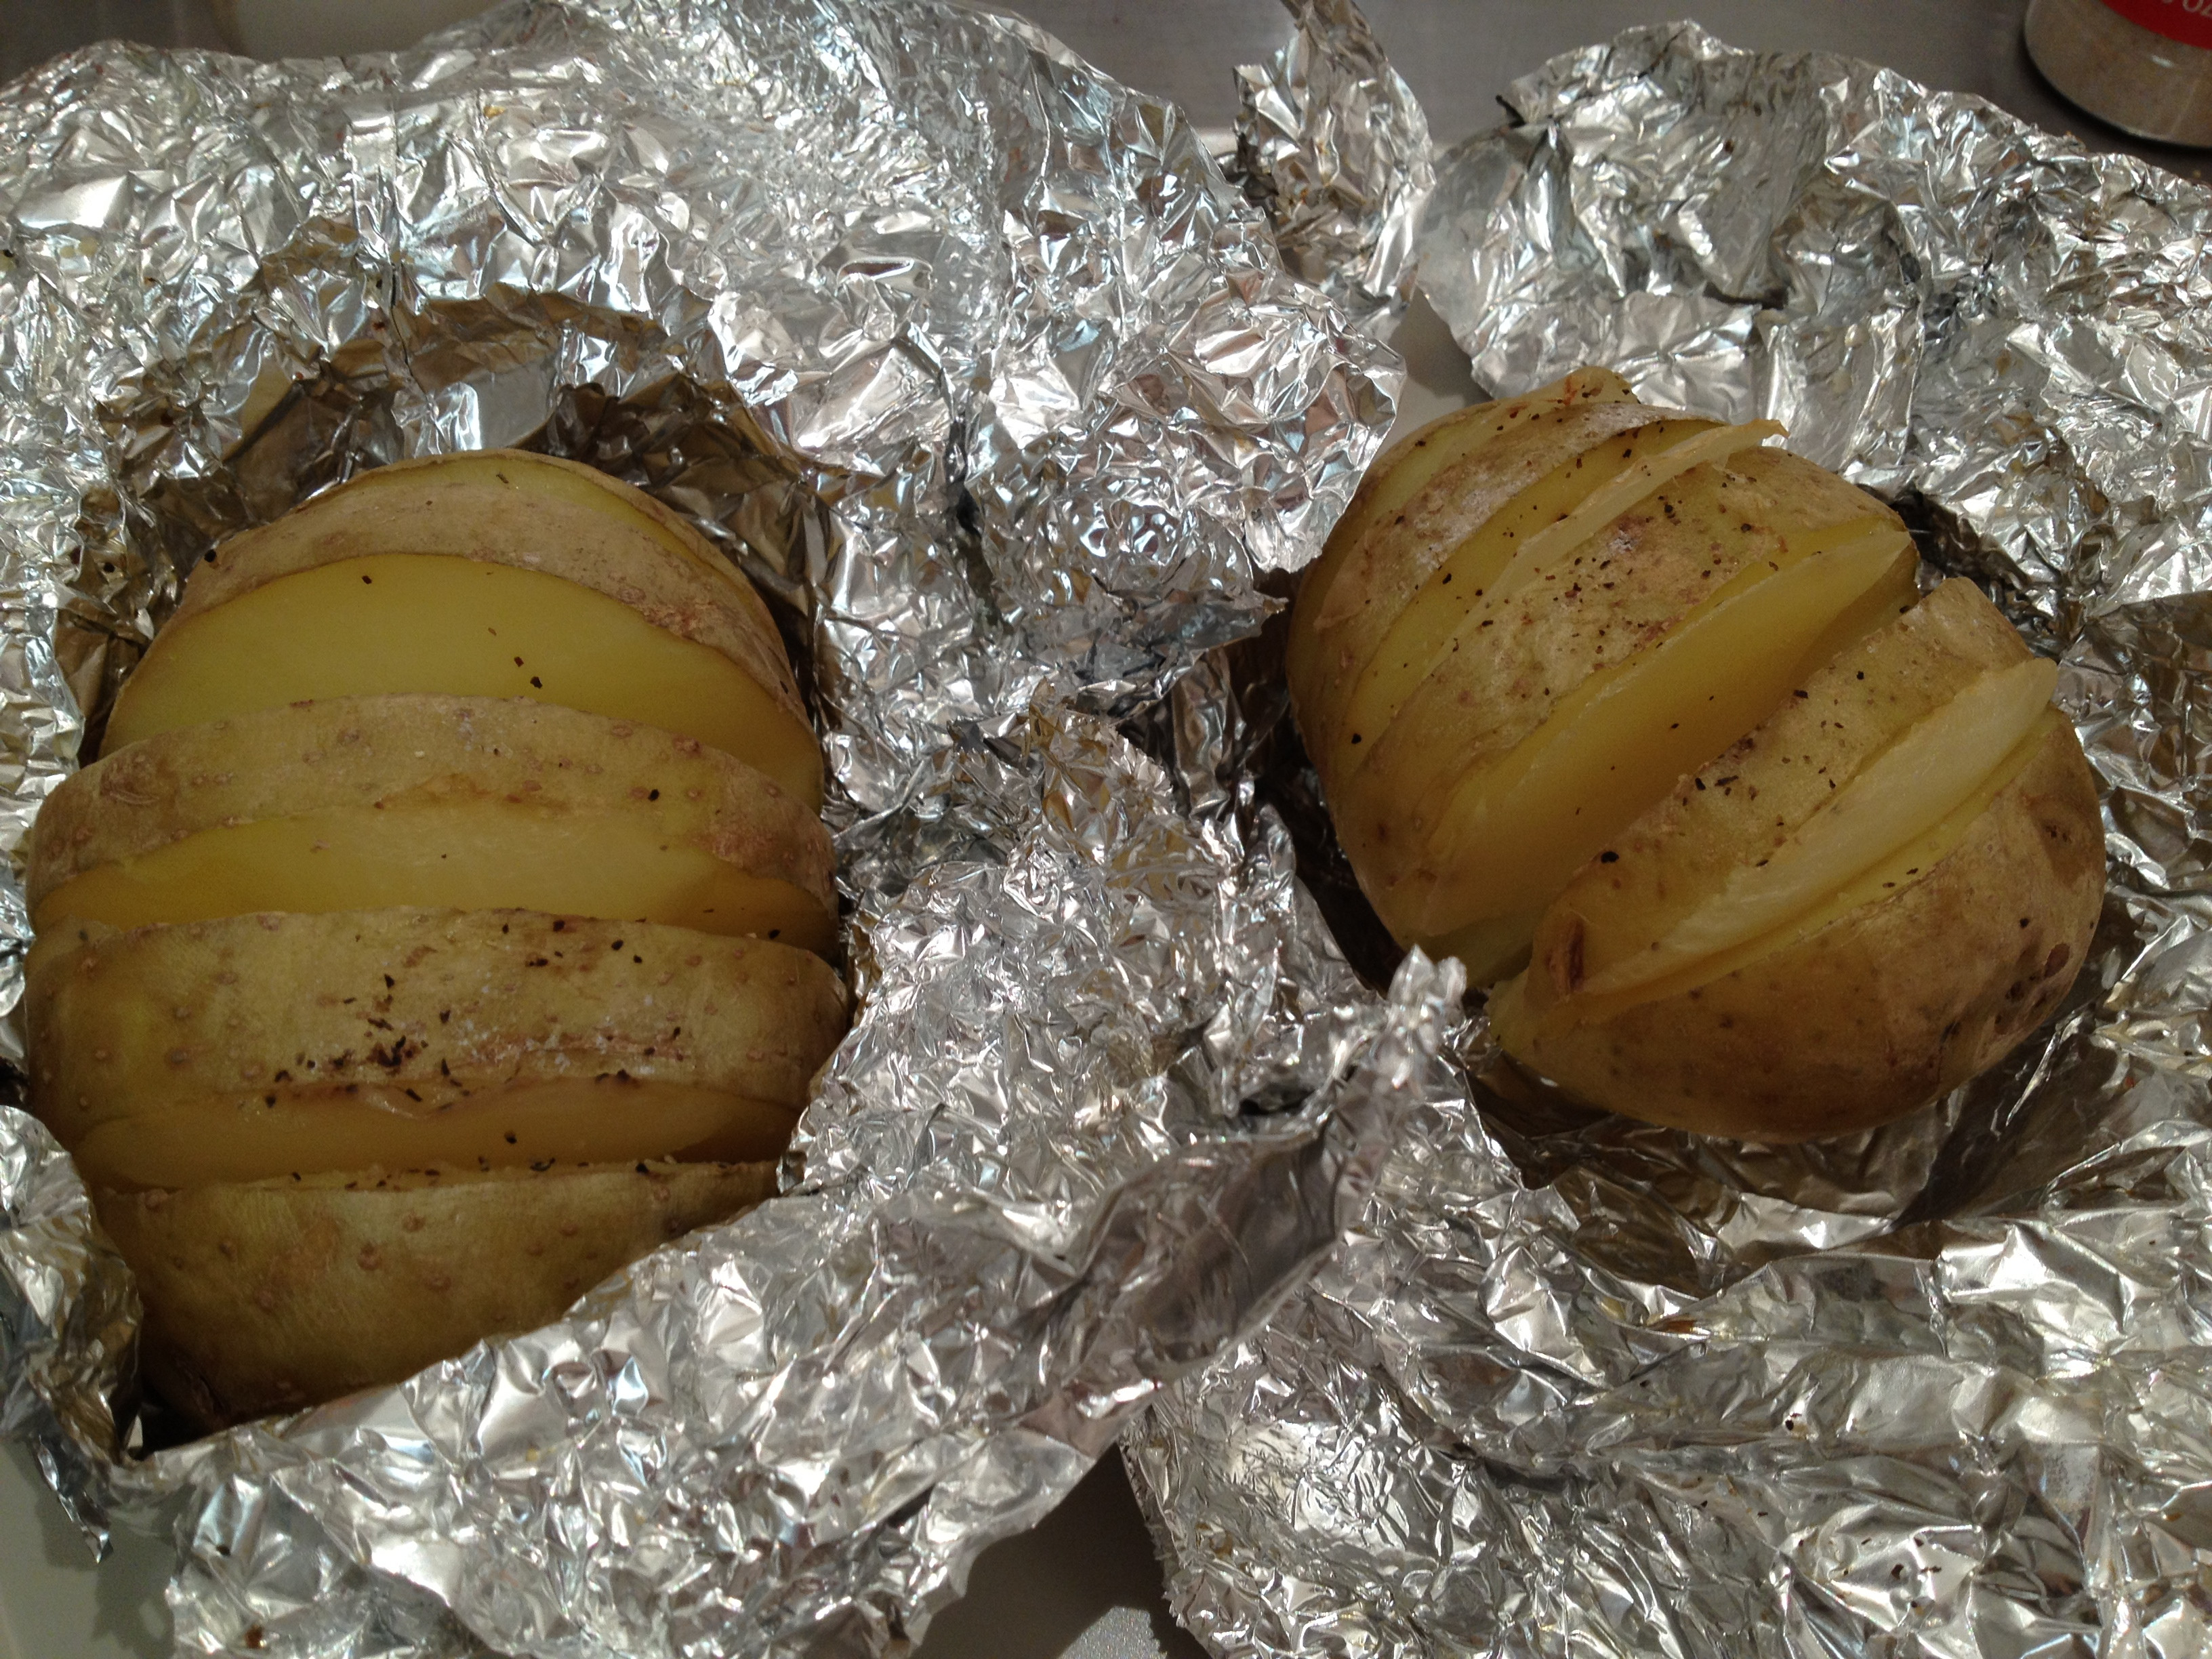 Baked Potato In Foil  baked potato in oven wrapped in foil